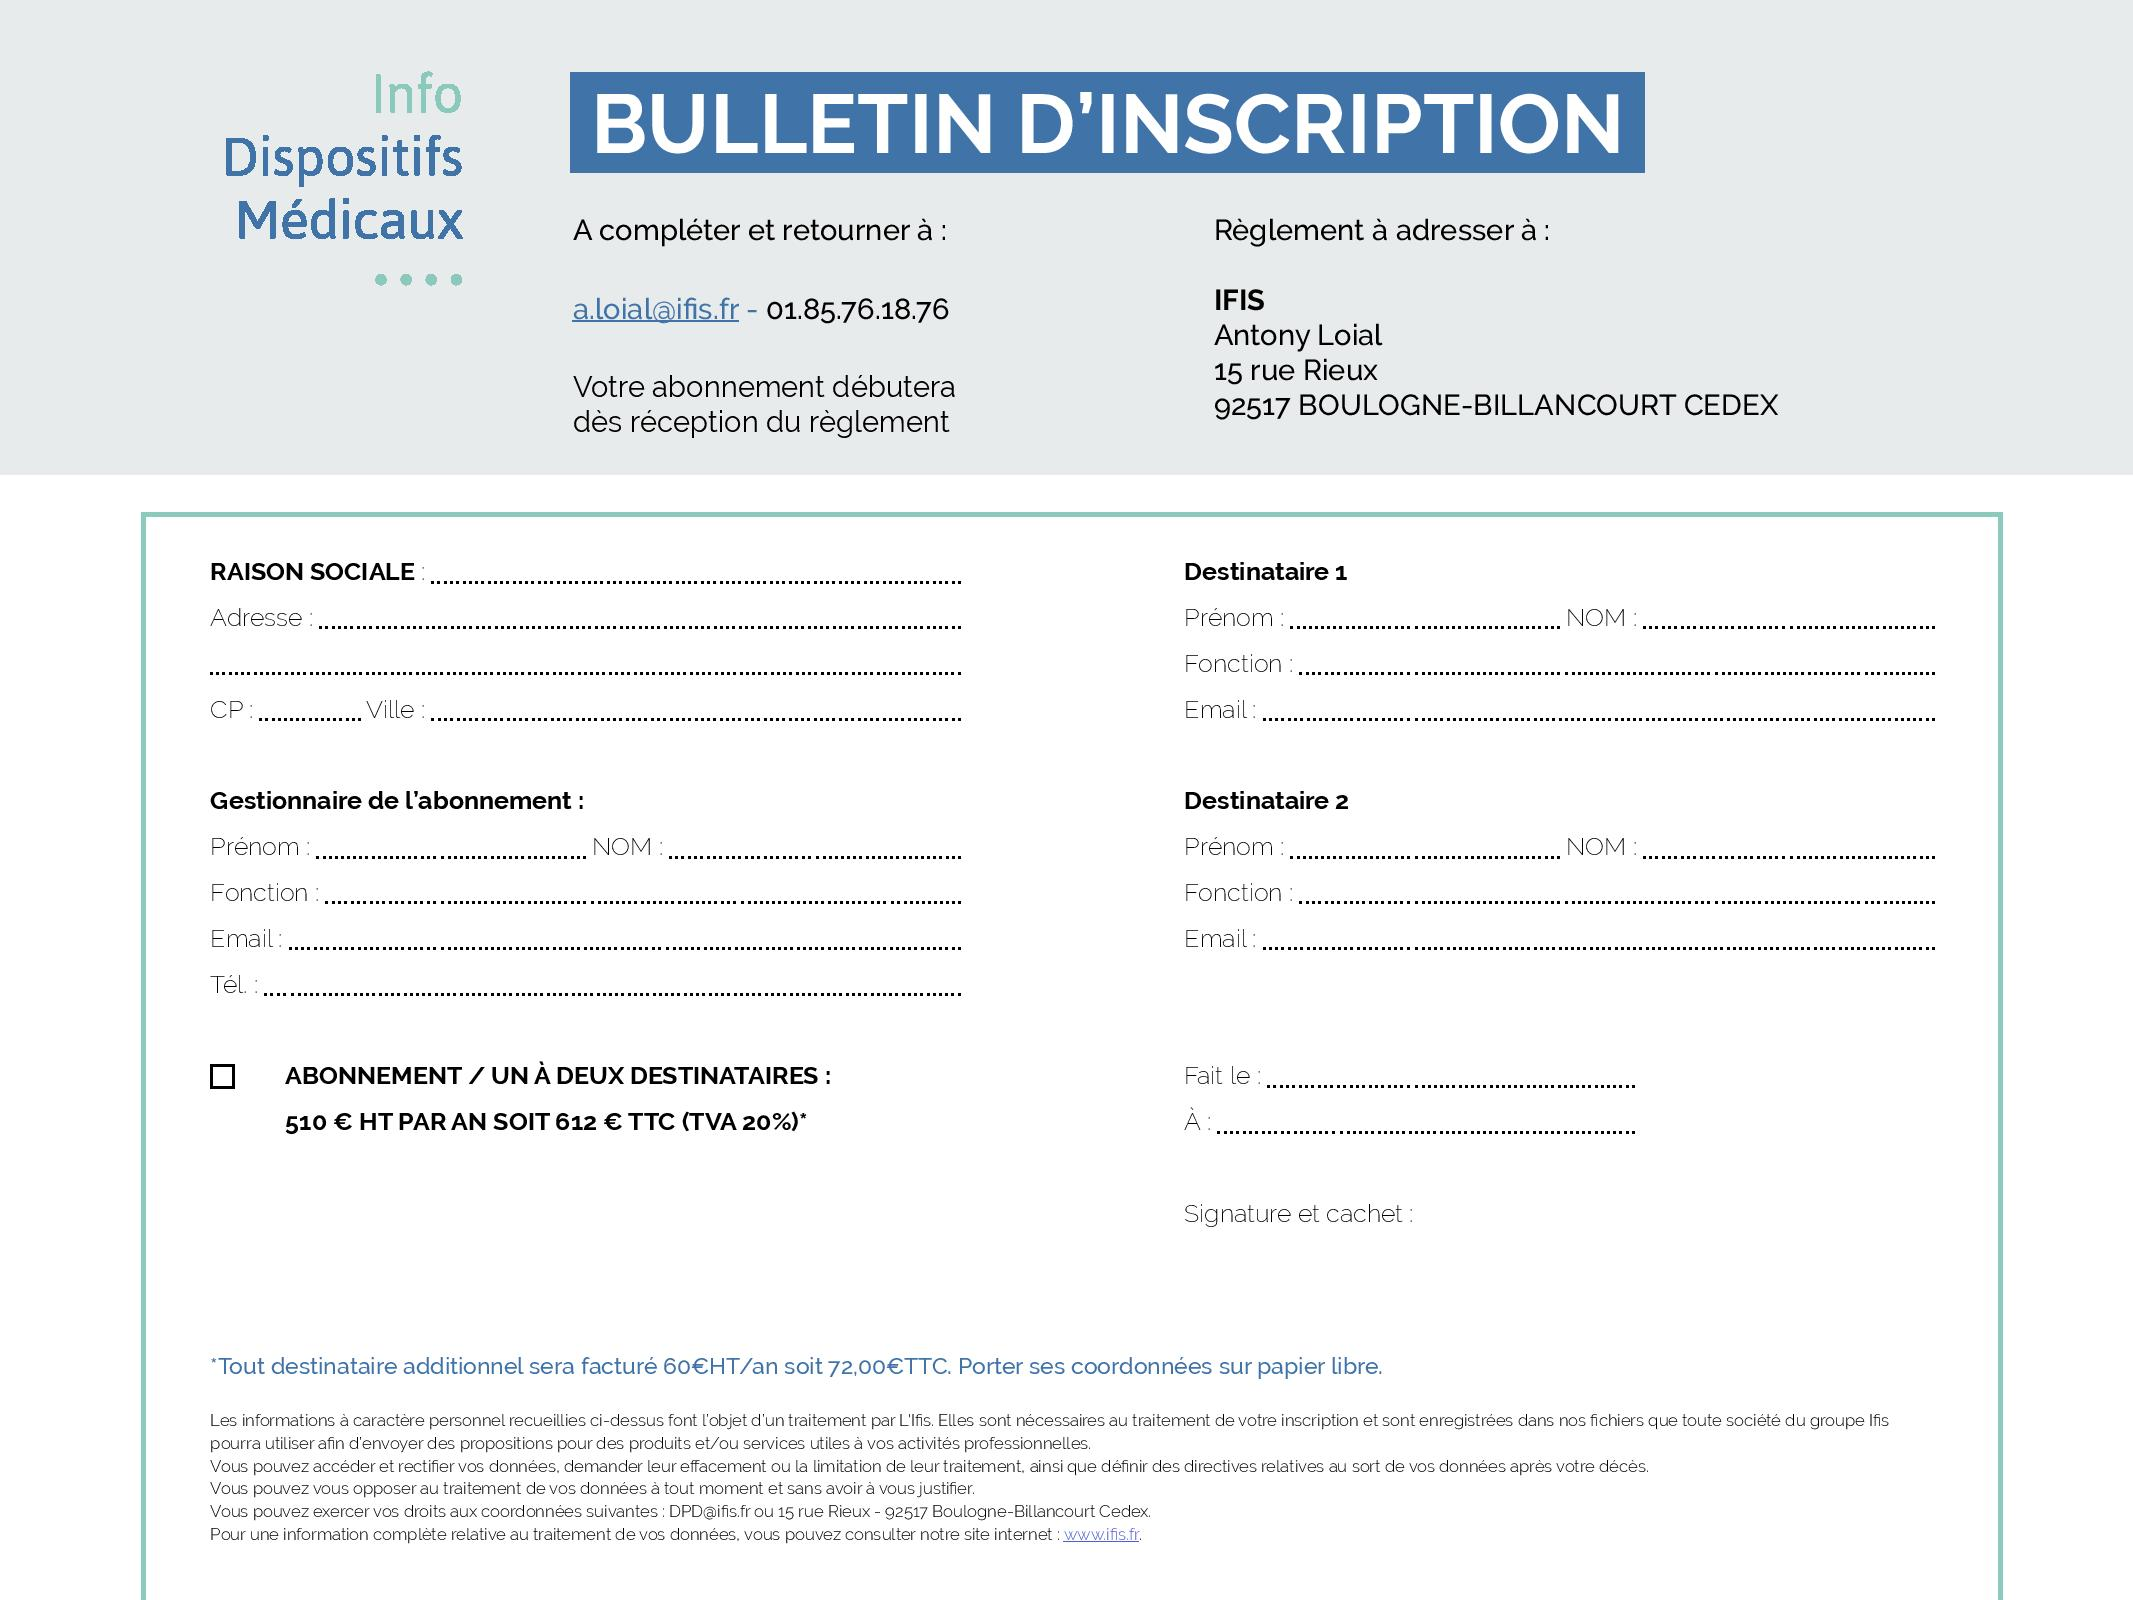 bulletin - inscription - info - dispositifs médicaux